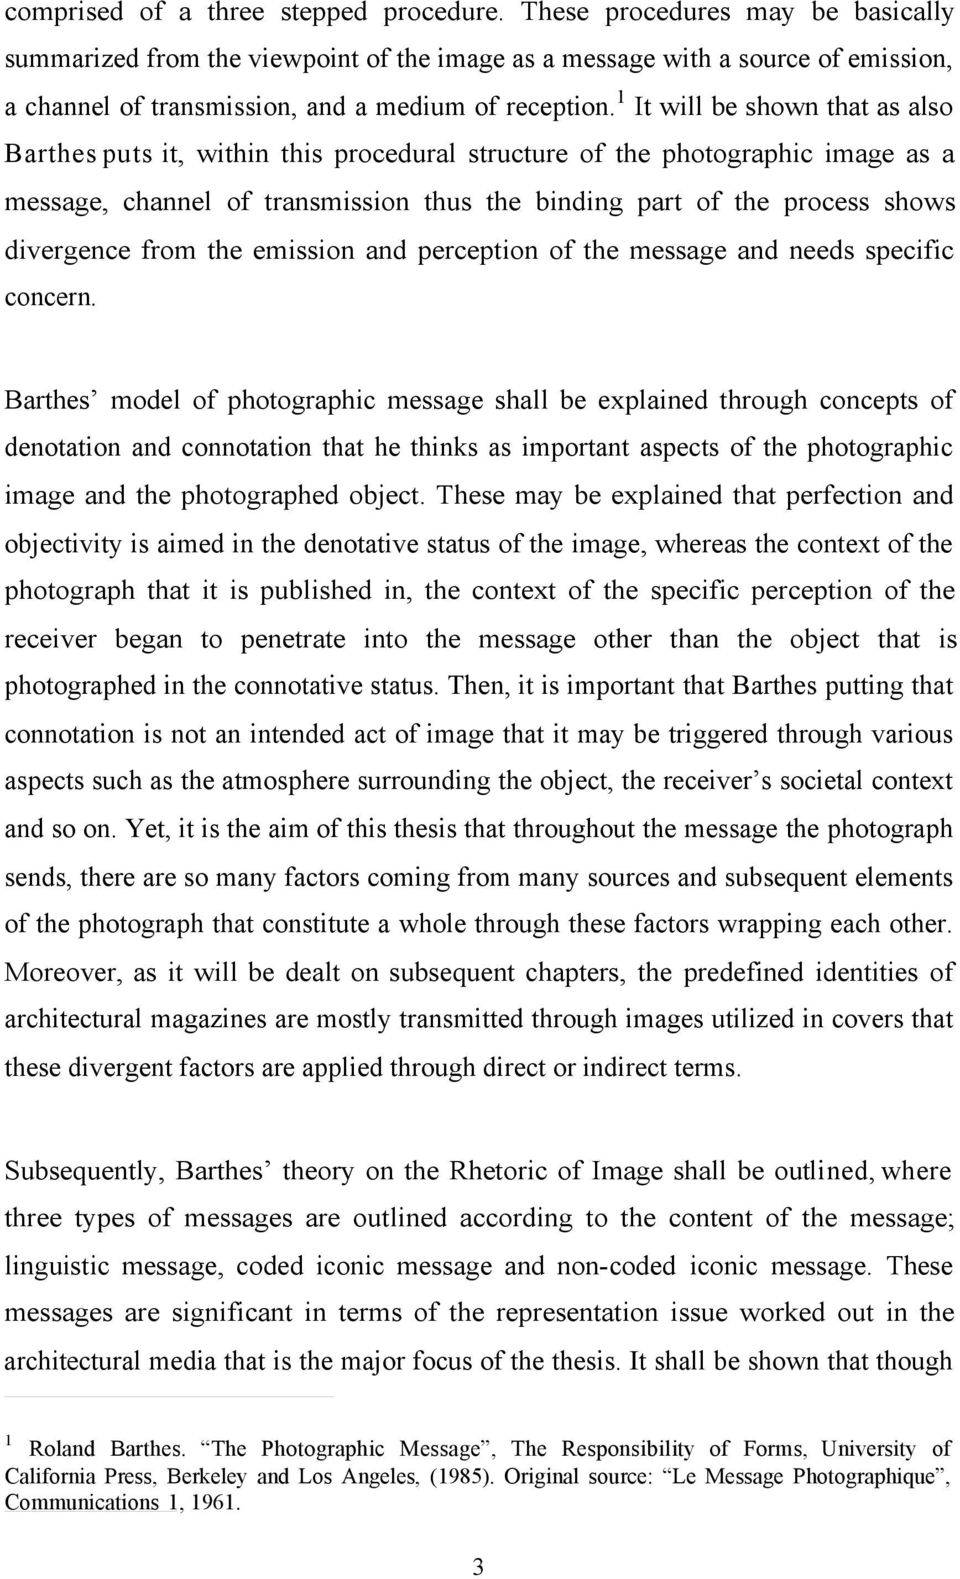 1 It will be shown that as also Barthes puts it, within this procedural structure of the photographic image as a message, channel of transmission thus the binding part of the process shows divergence